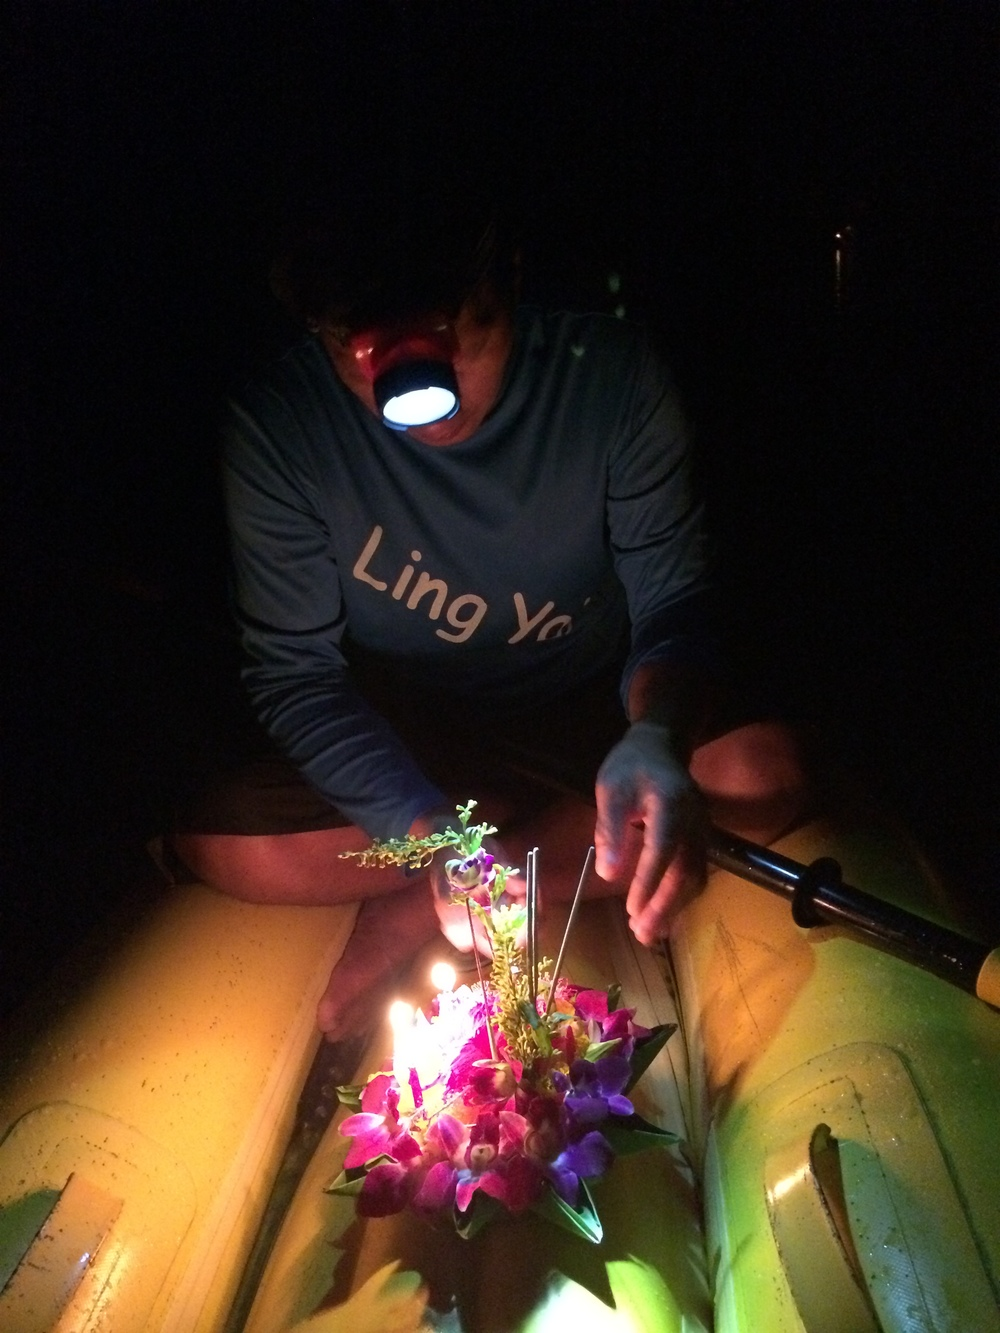 Lighting the kratong and setting it free